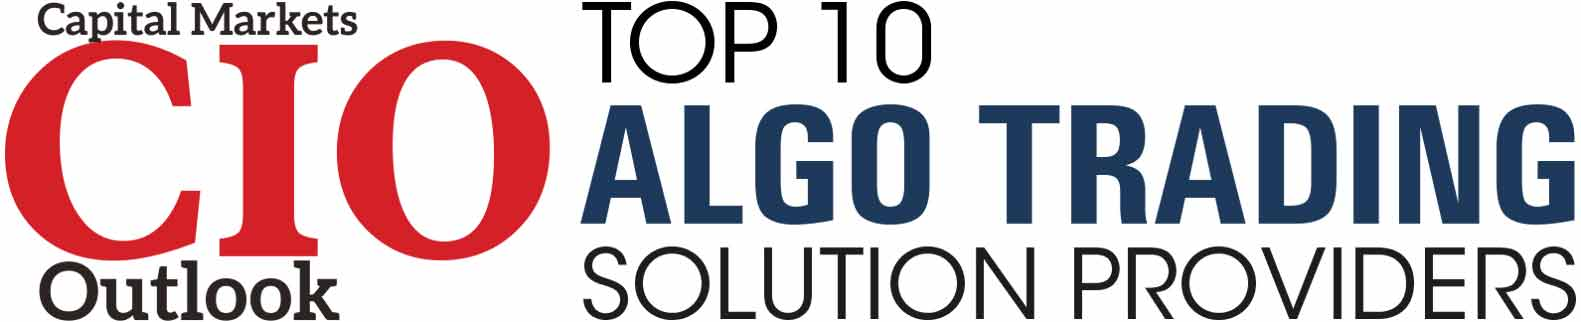 Top 10 Algo Trading Solution Companies - 2020